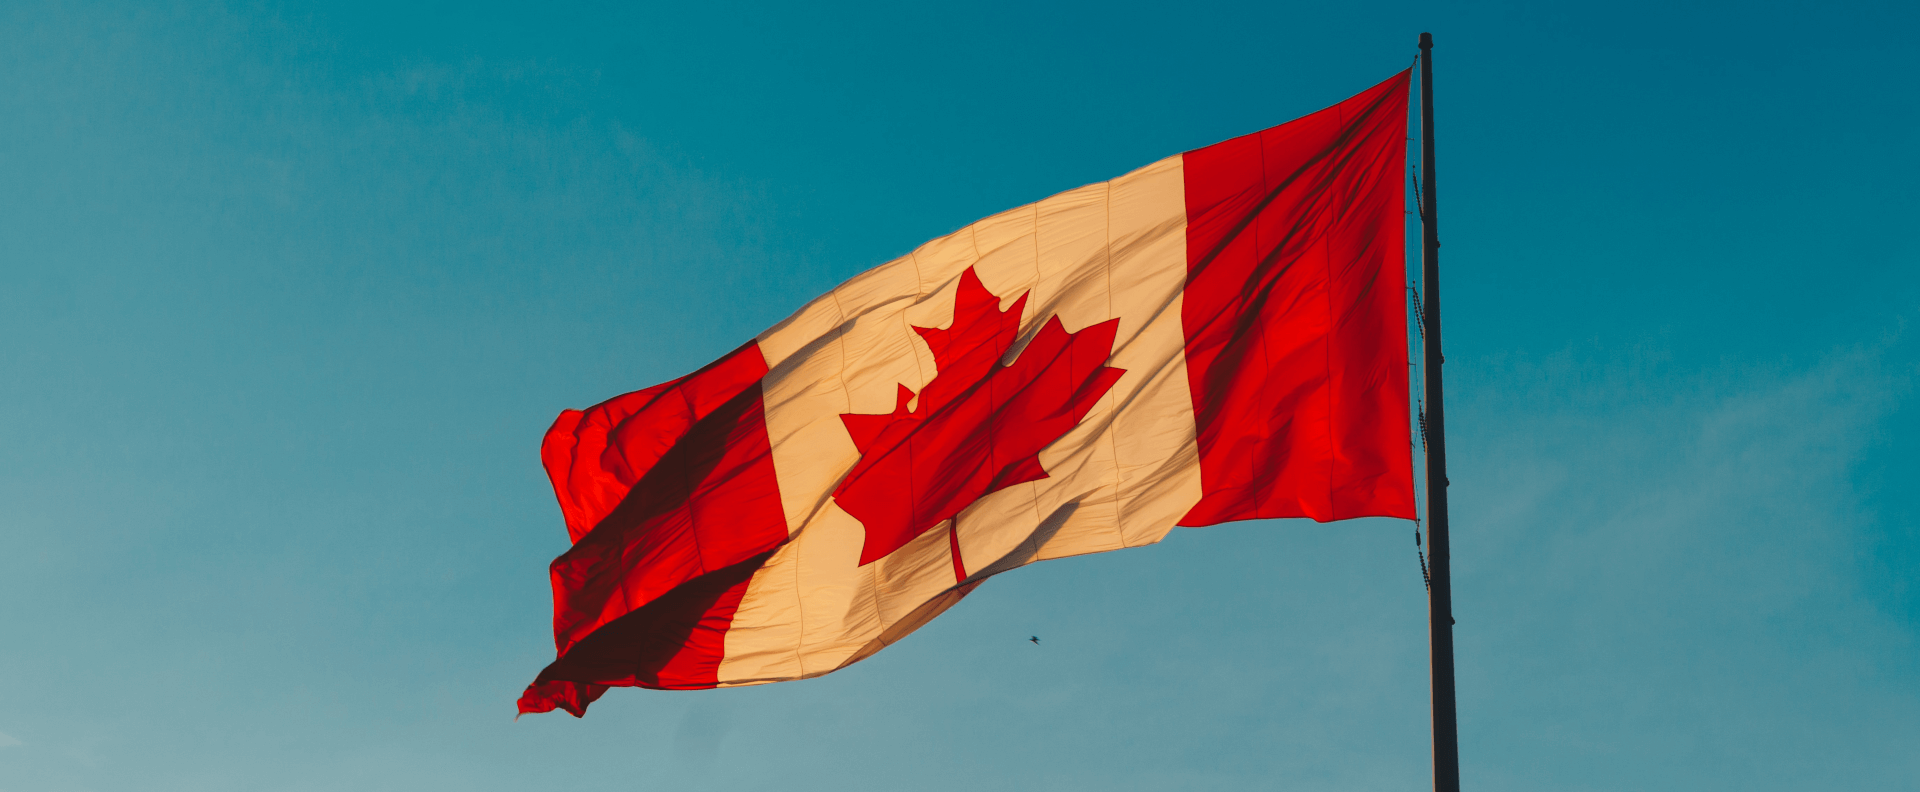 Canadian flag in the wind against a blue sky.